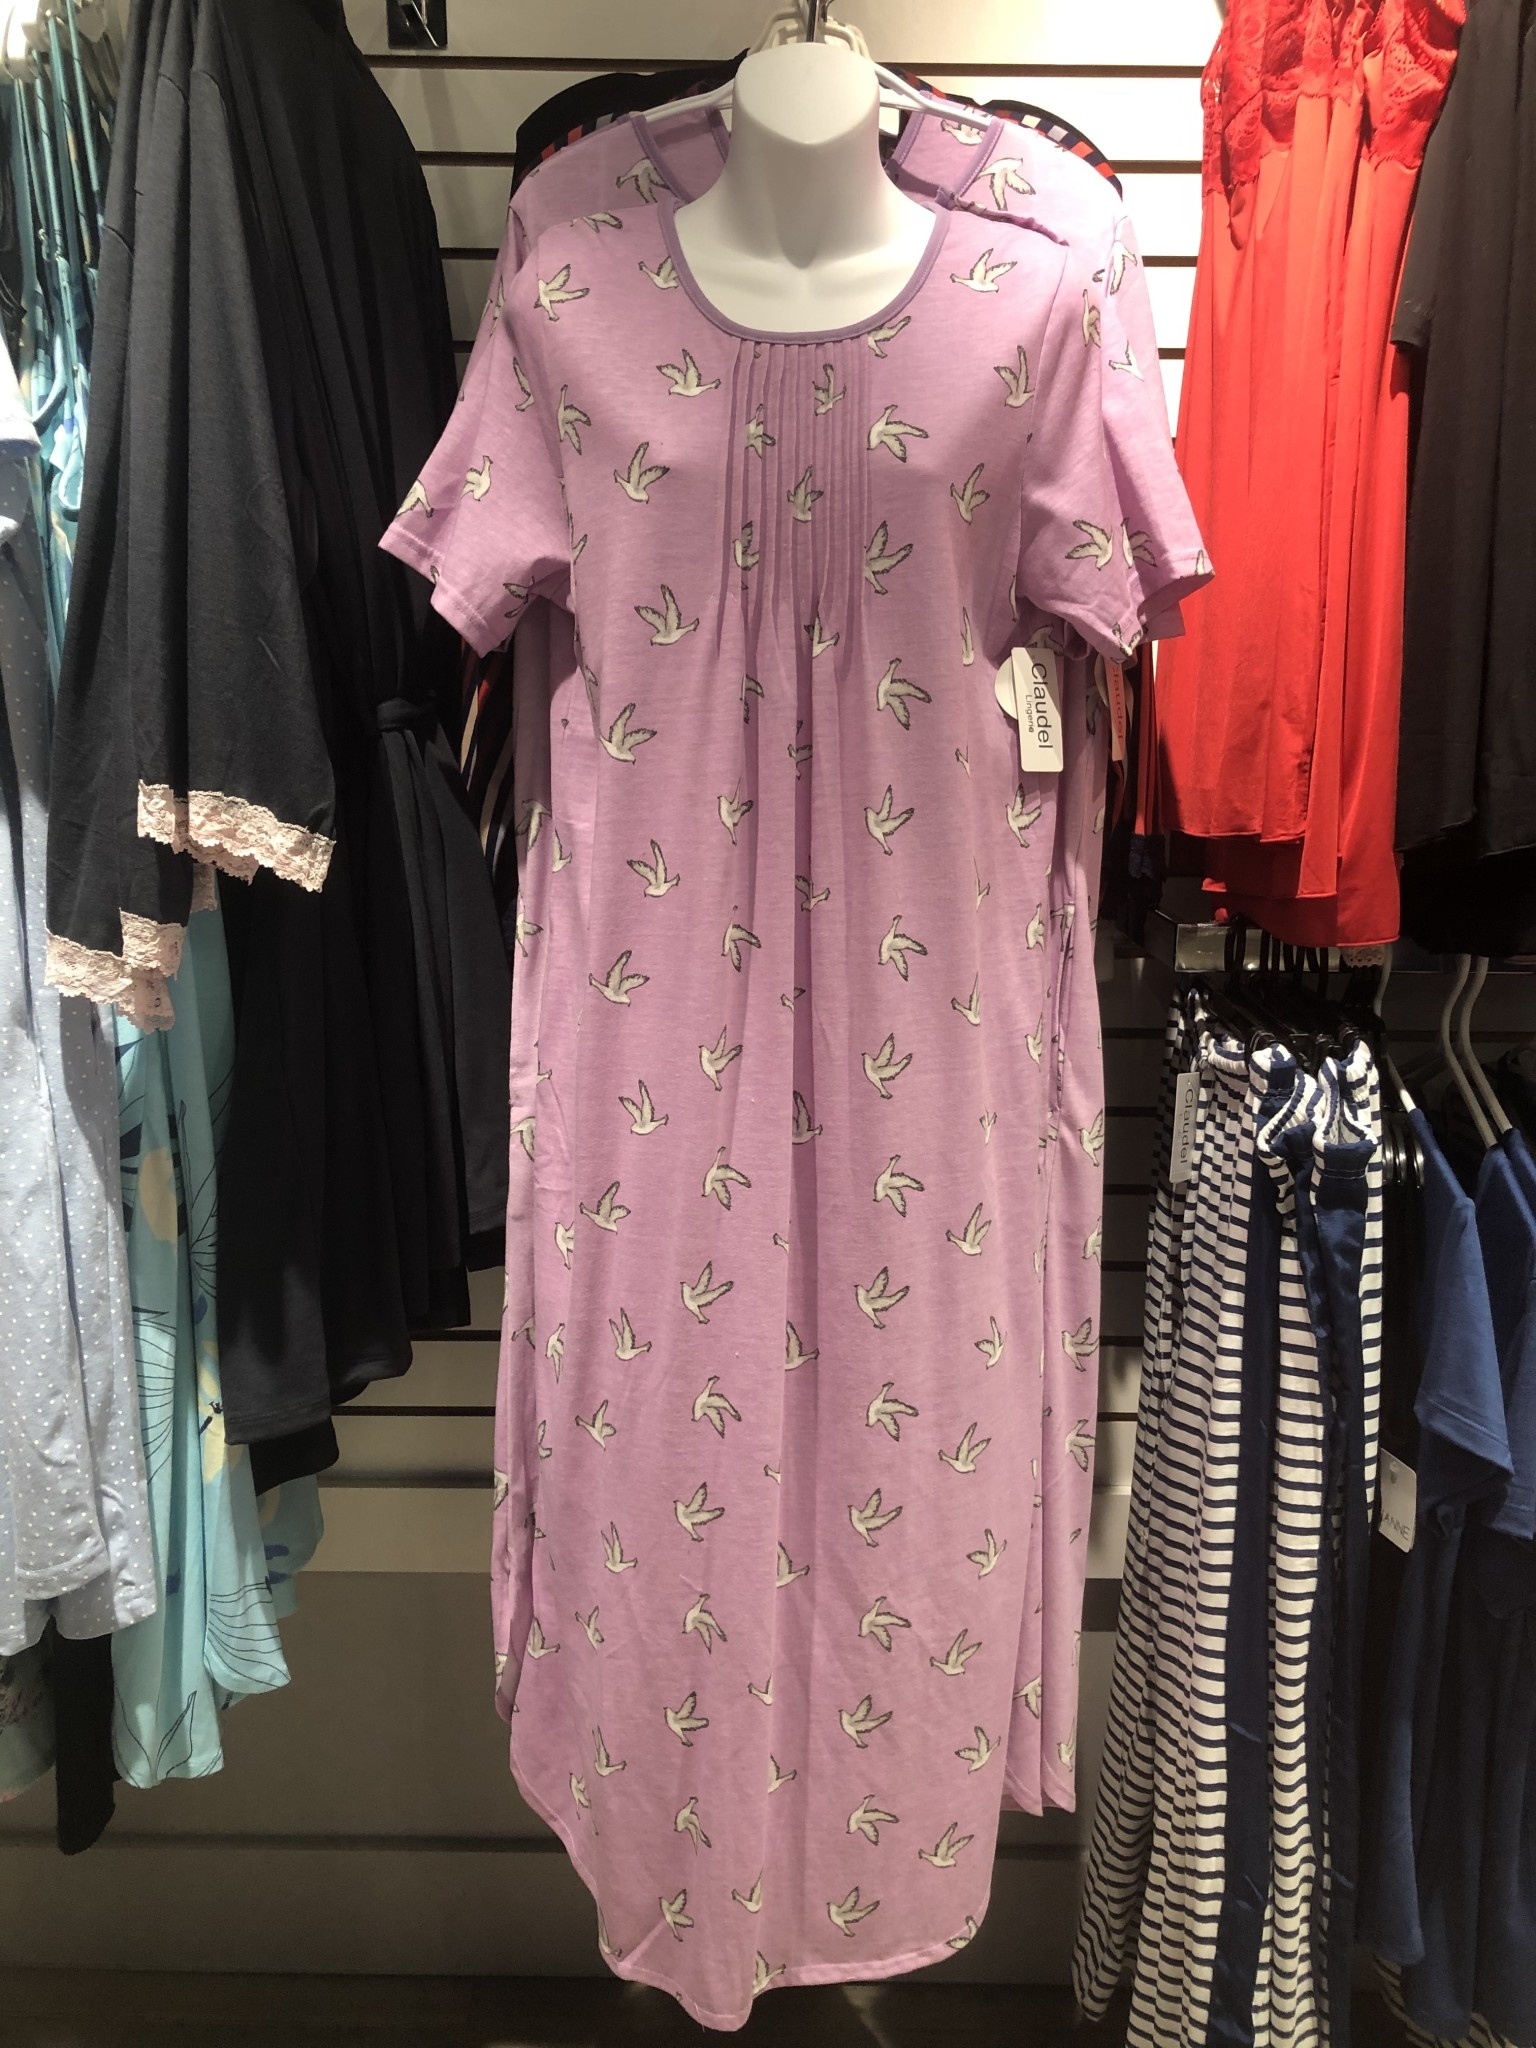 Long Hospital Gown